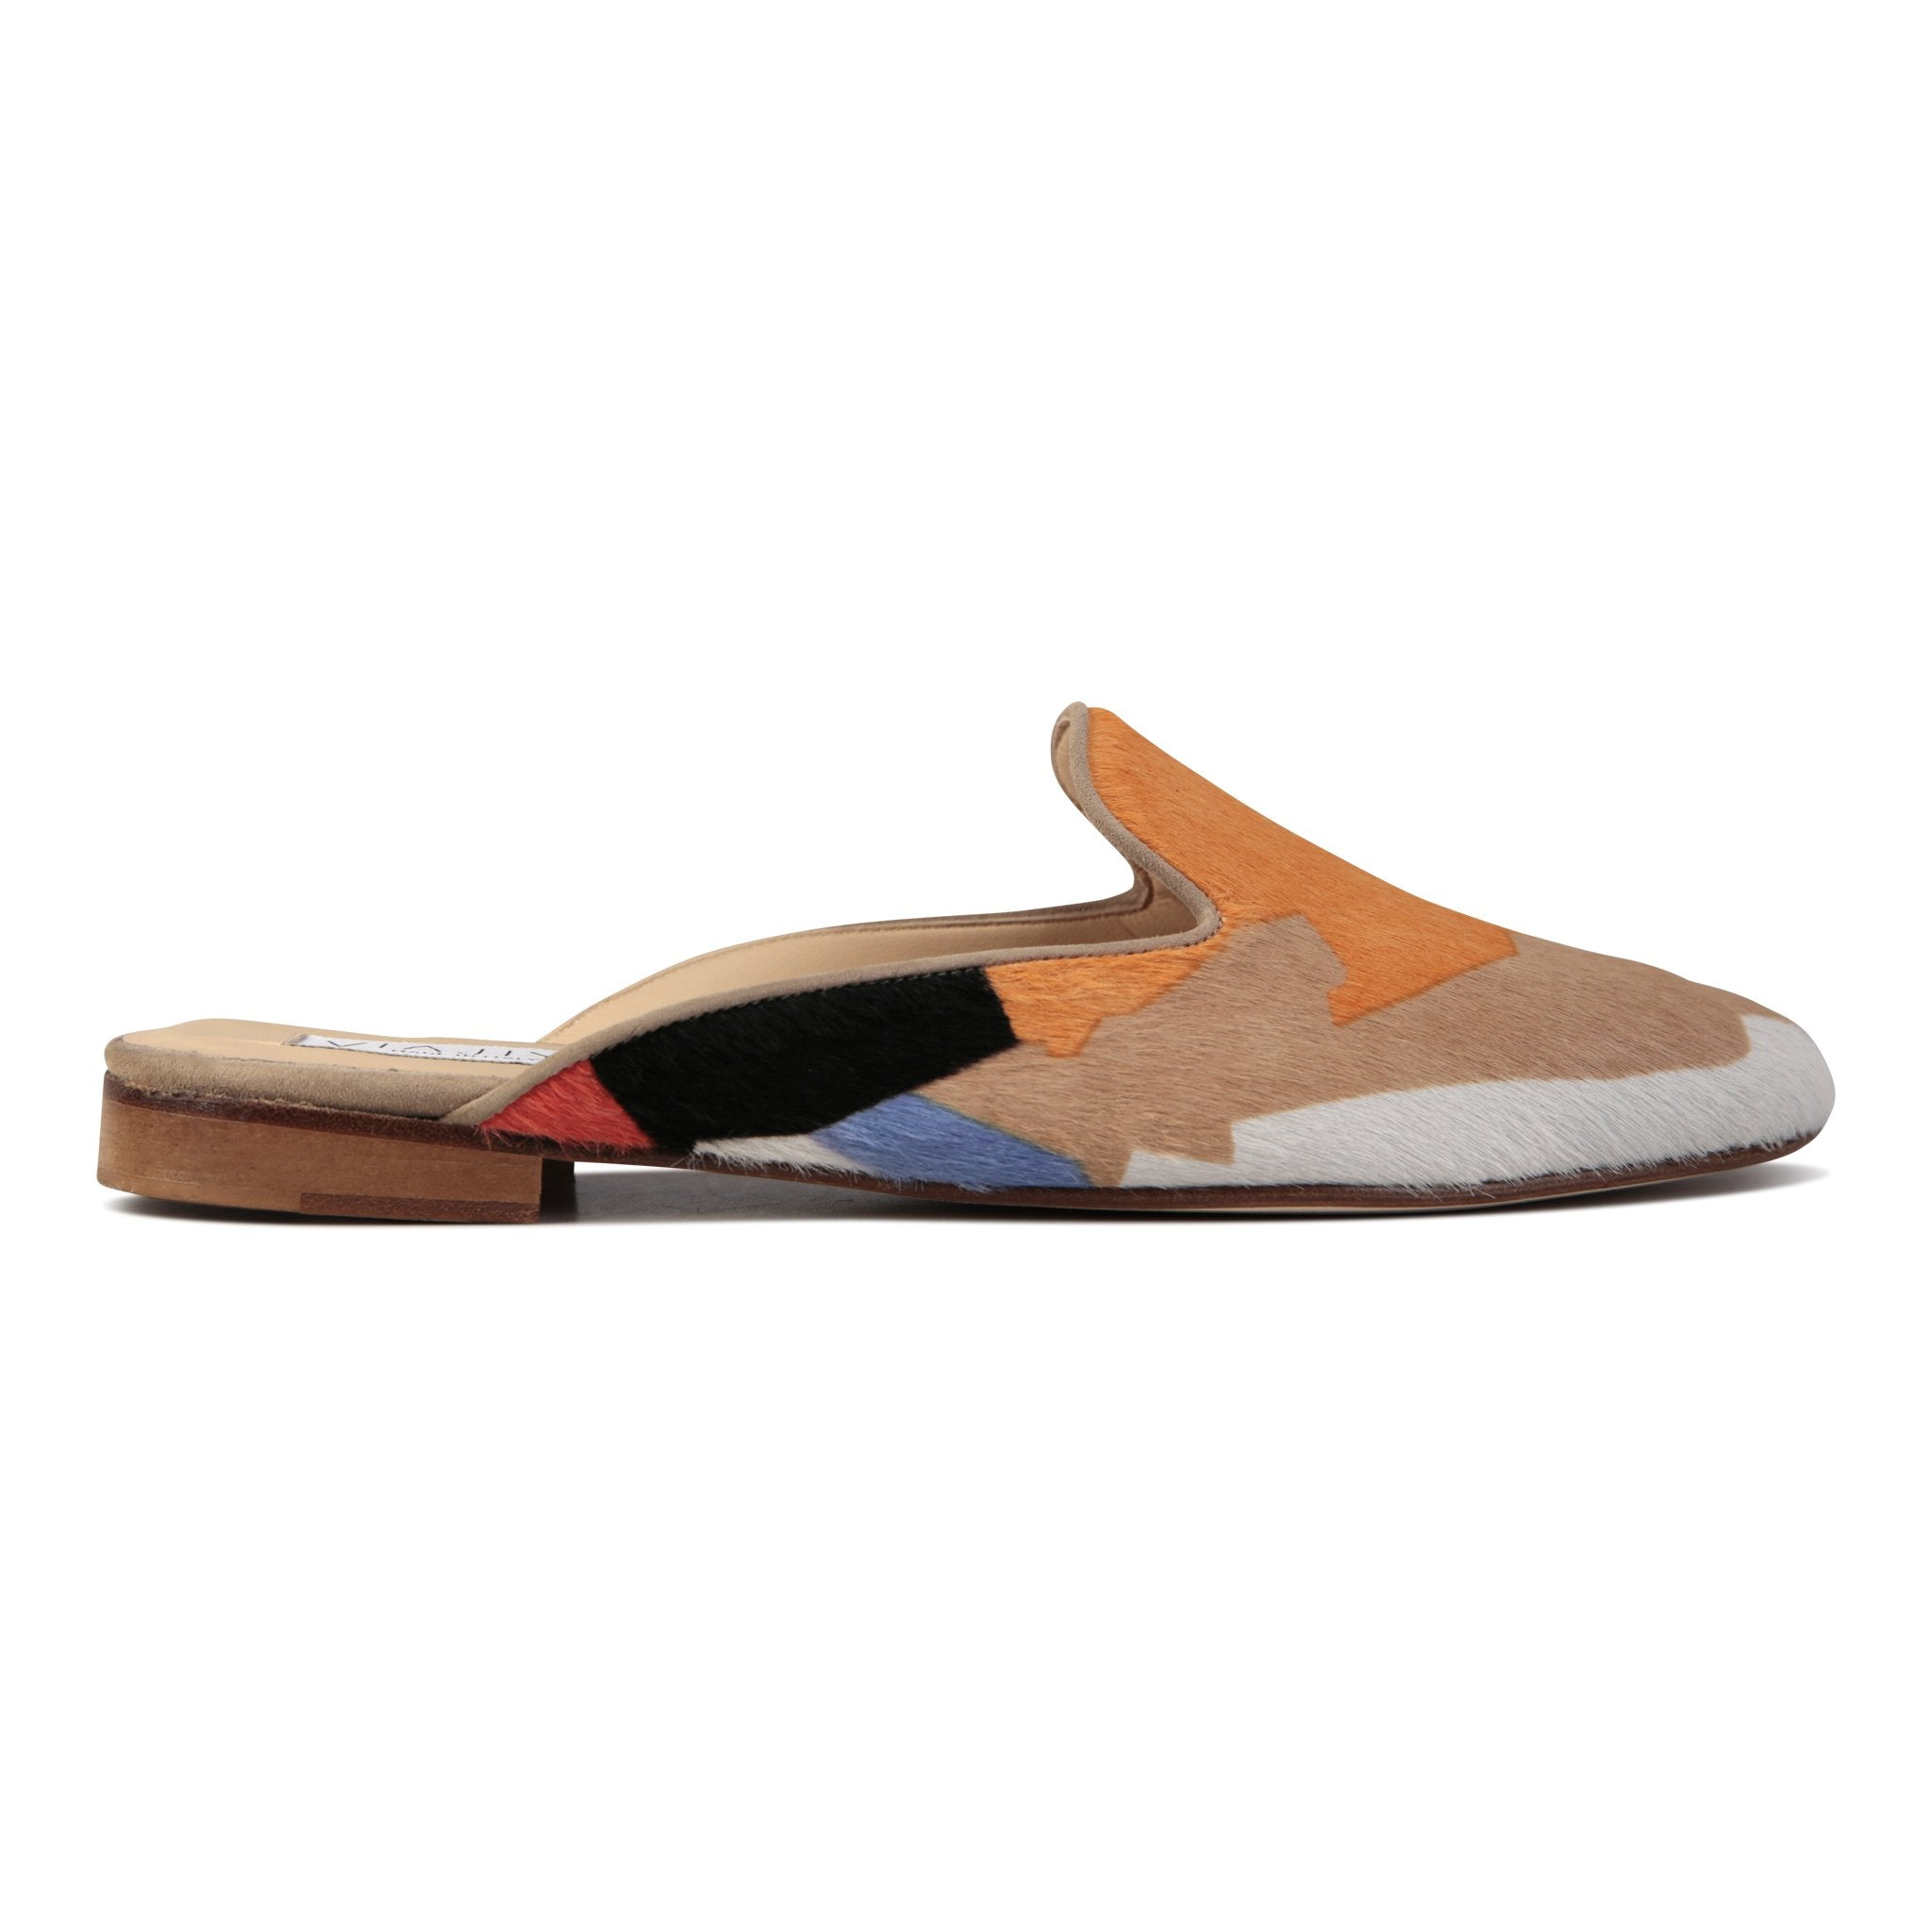 ISEO - Calf Hair Rio II + Velukid Tan, VIAJIYU - Women's Hand Made Sustainable Luxury Shoes. Made in Italy. Made to Order.